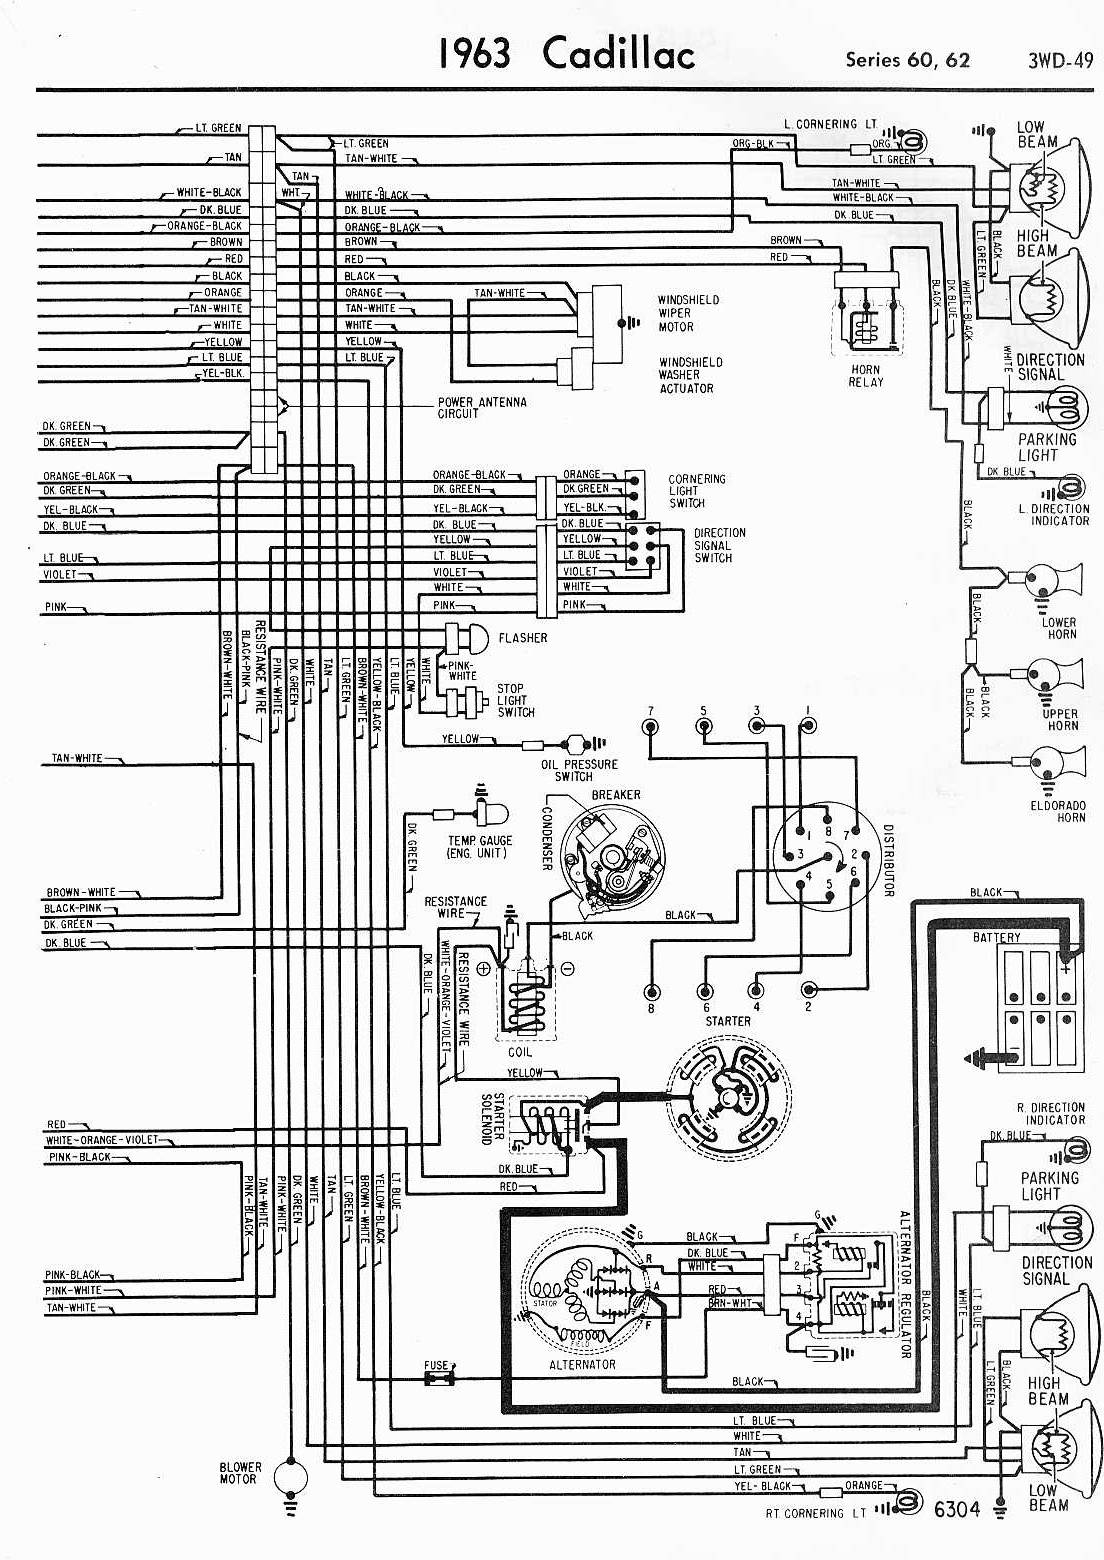 cadillac car manuals wiring diagrams pdf fault codes rh automotive manuals net 1964 Cadillac Vacuum Diagram 1964 Cadillac Vacuum Diagram